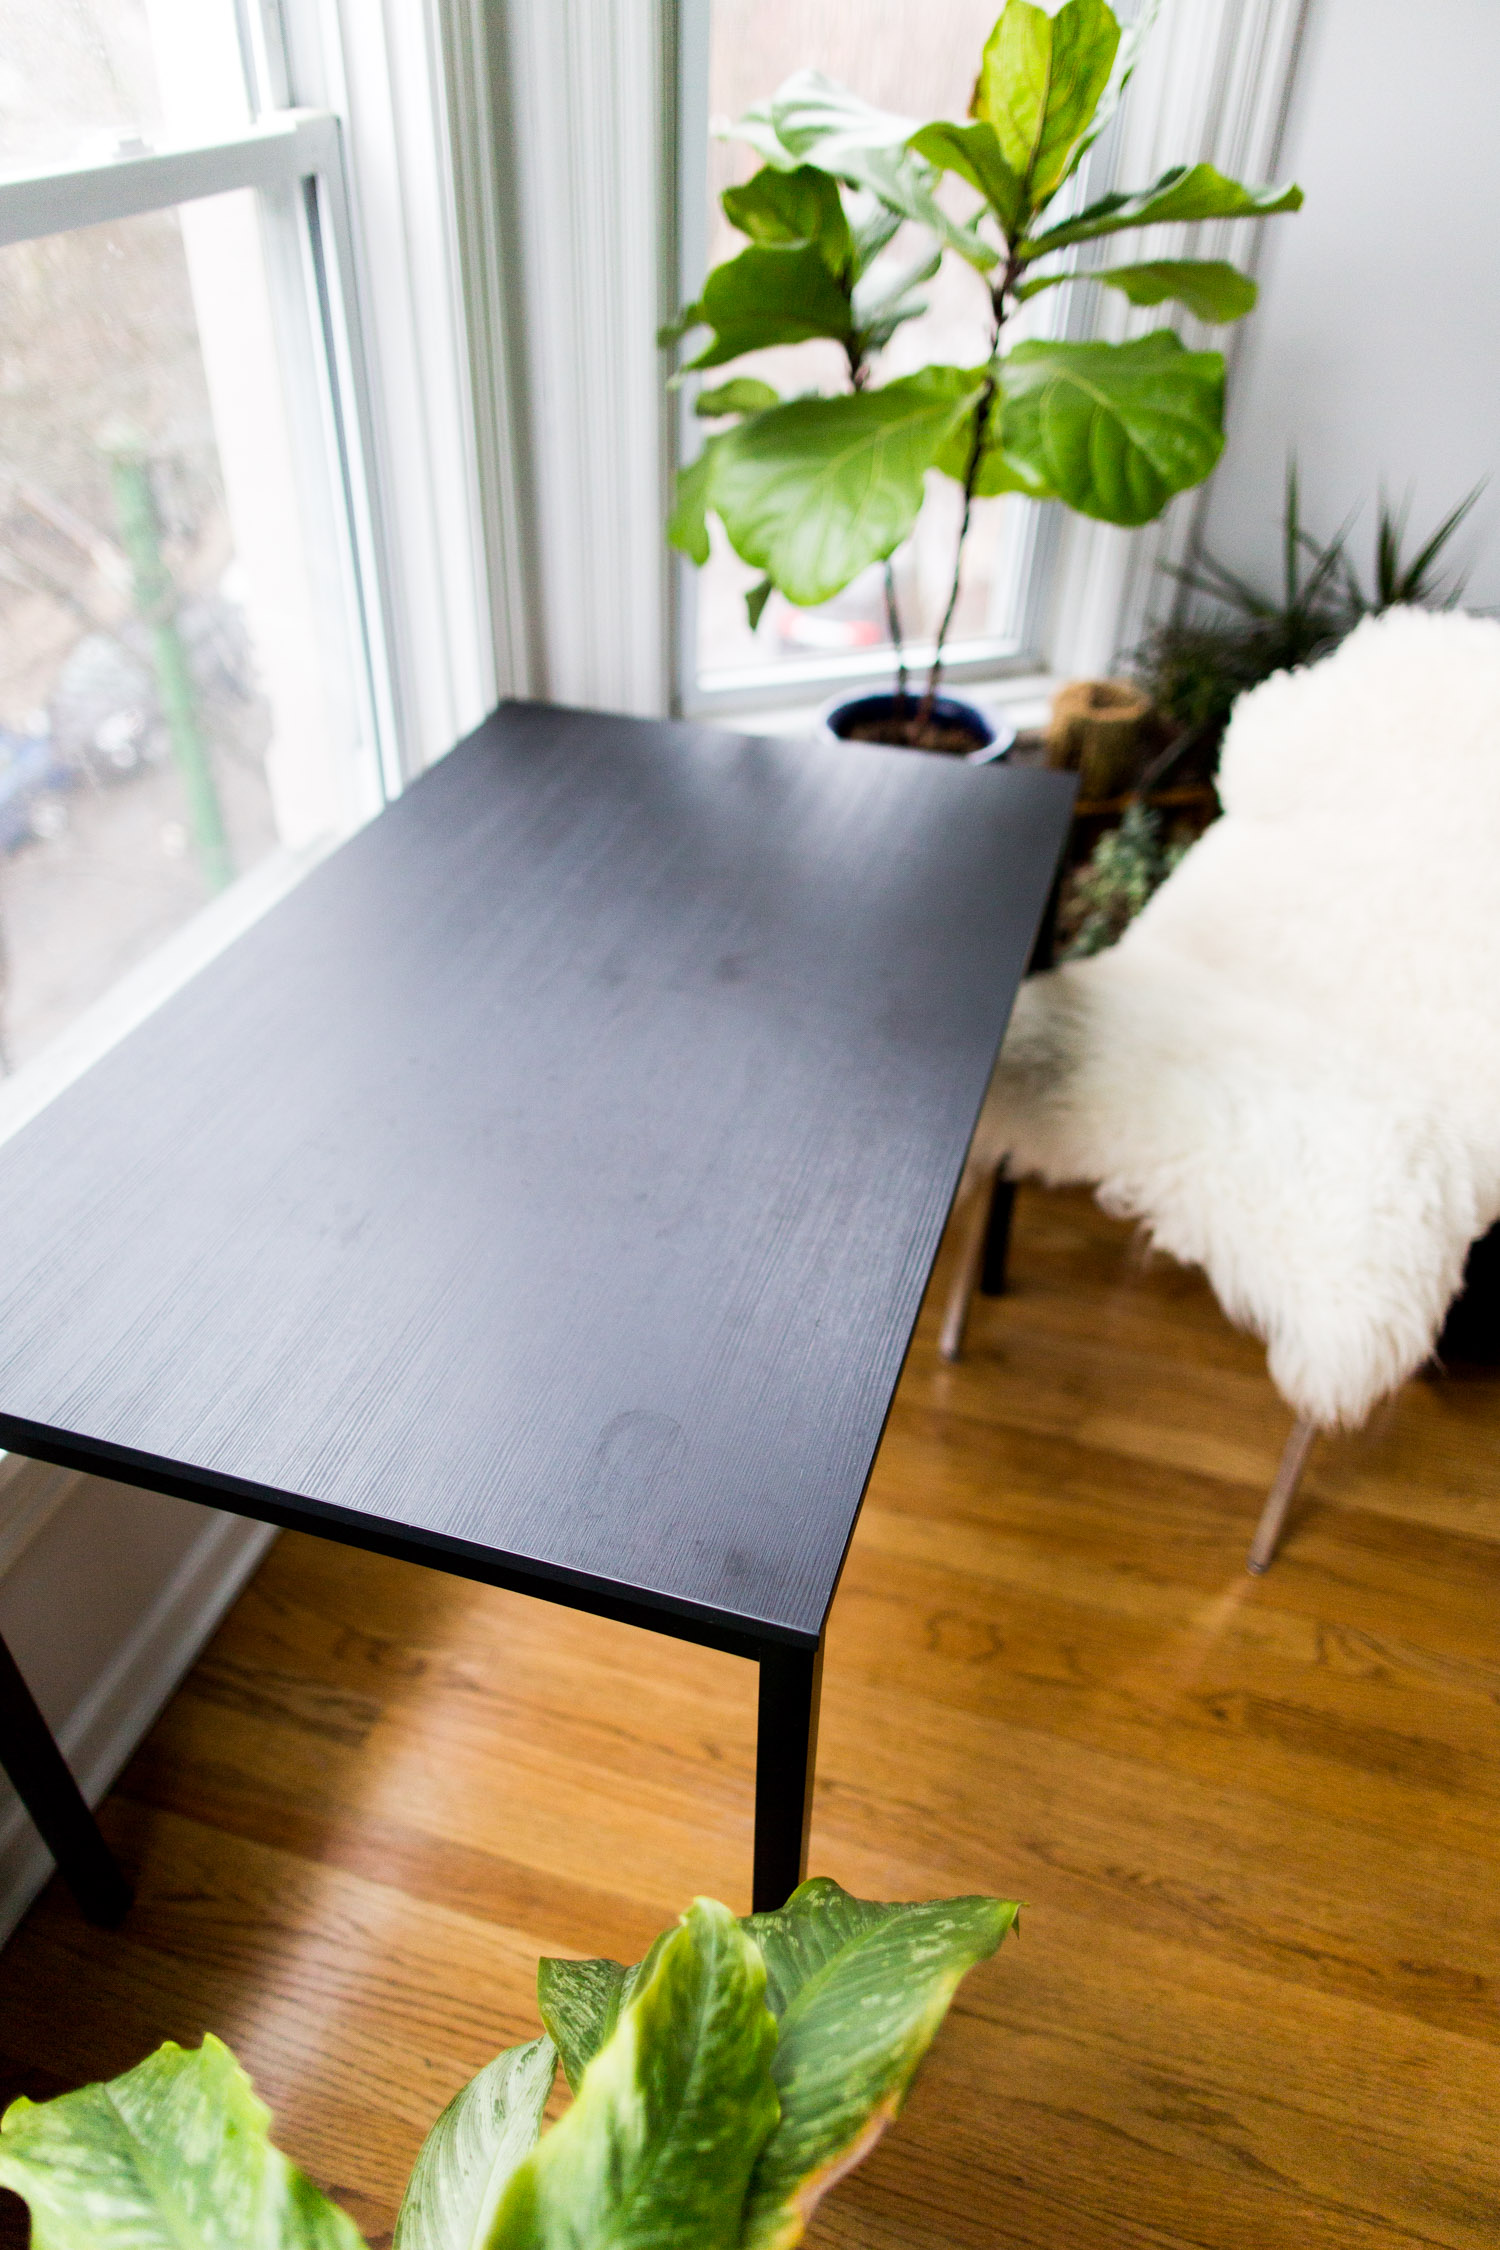 A Diy Marble Desk For Under 50 The Imperfectionist